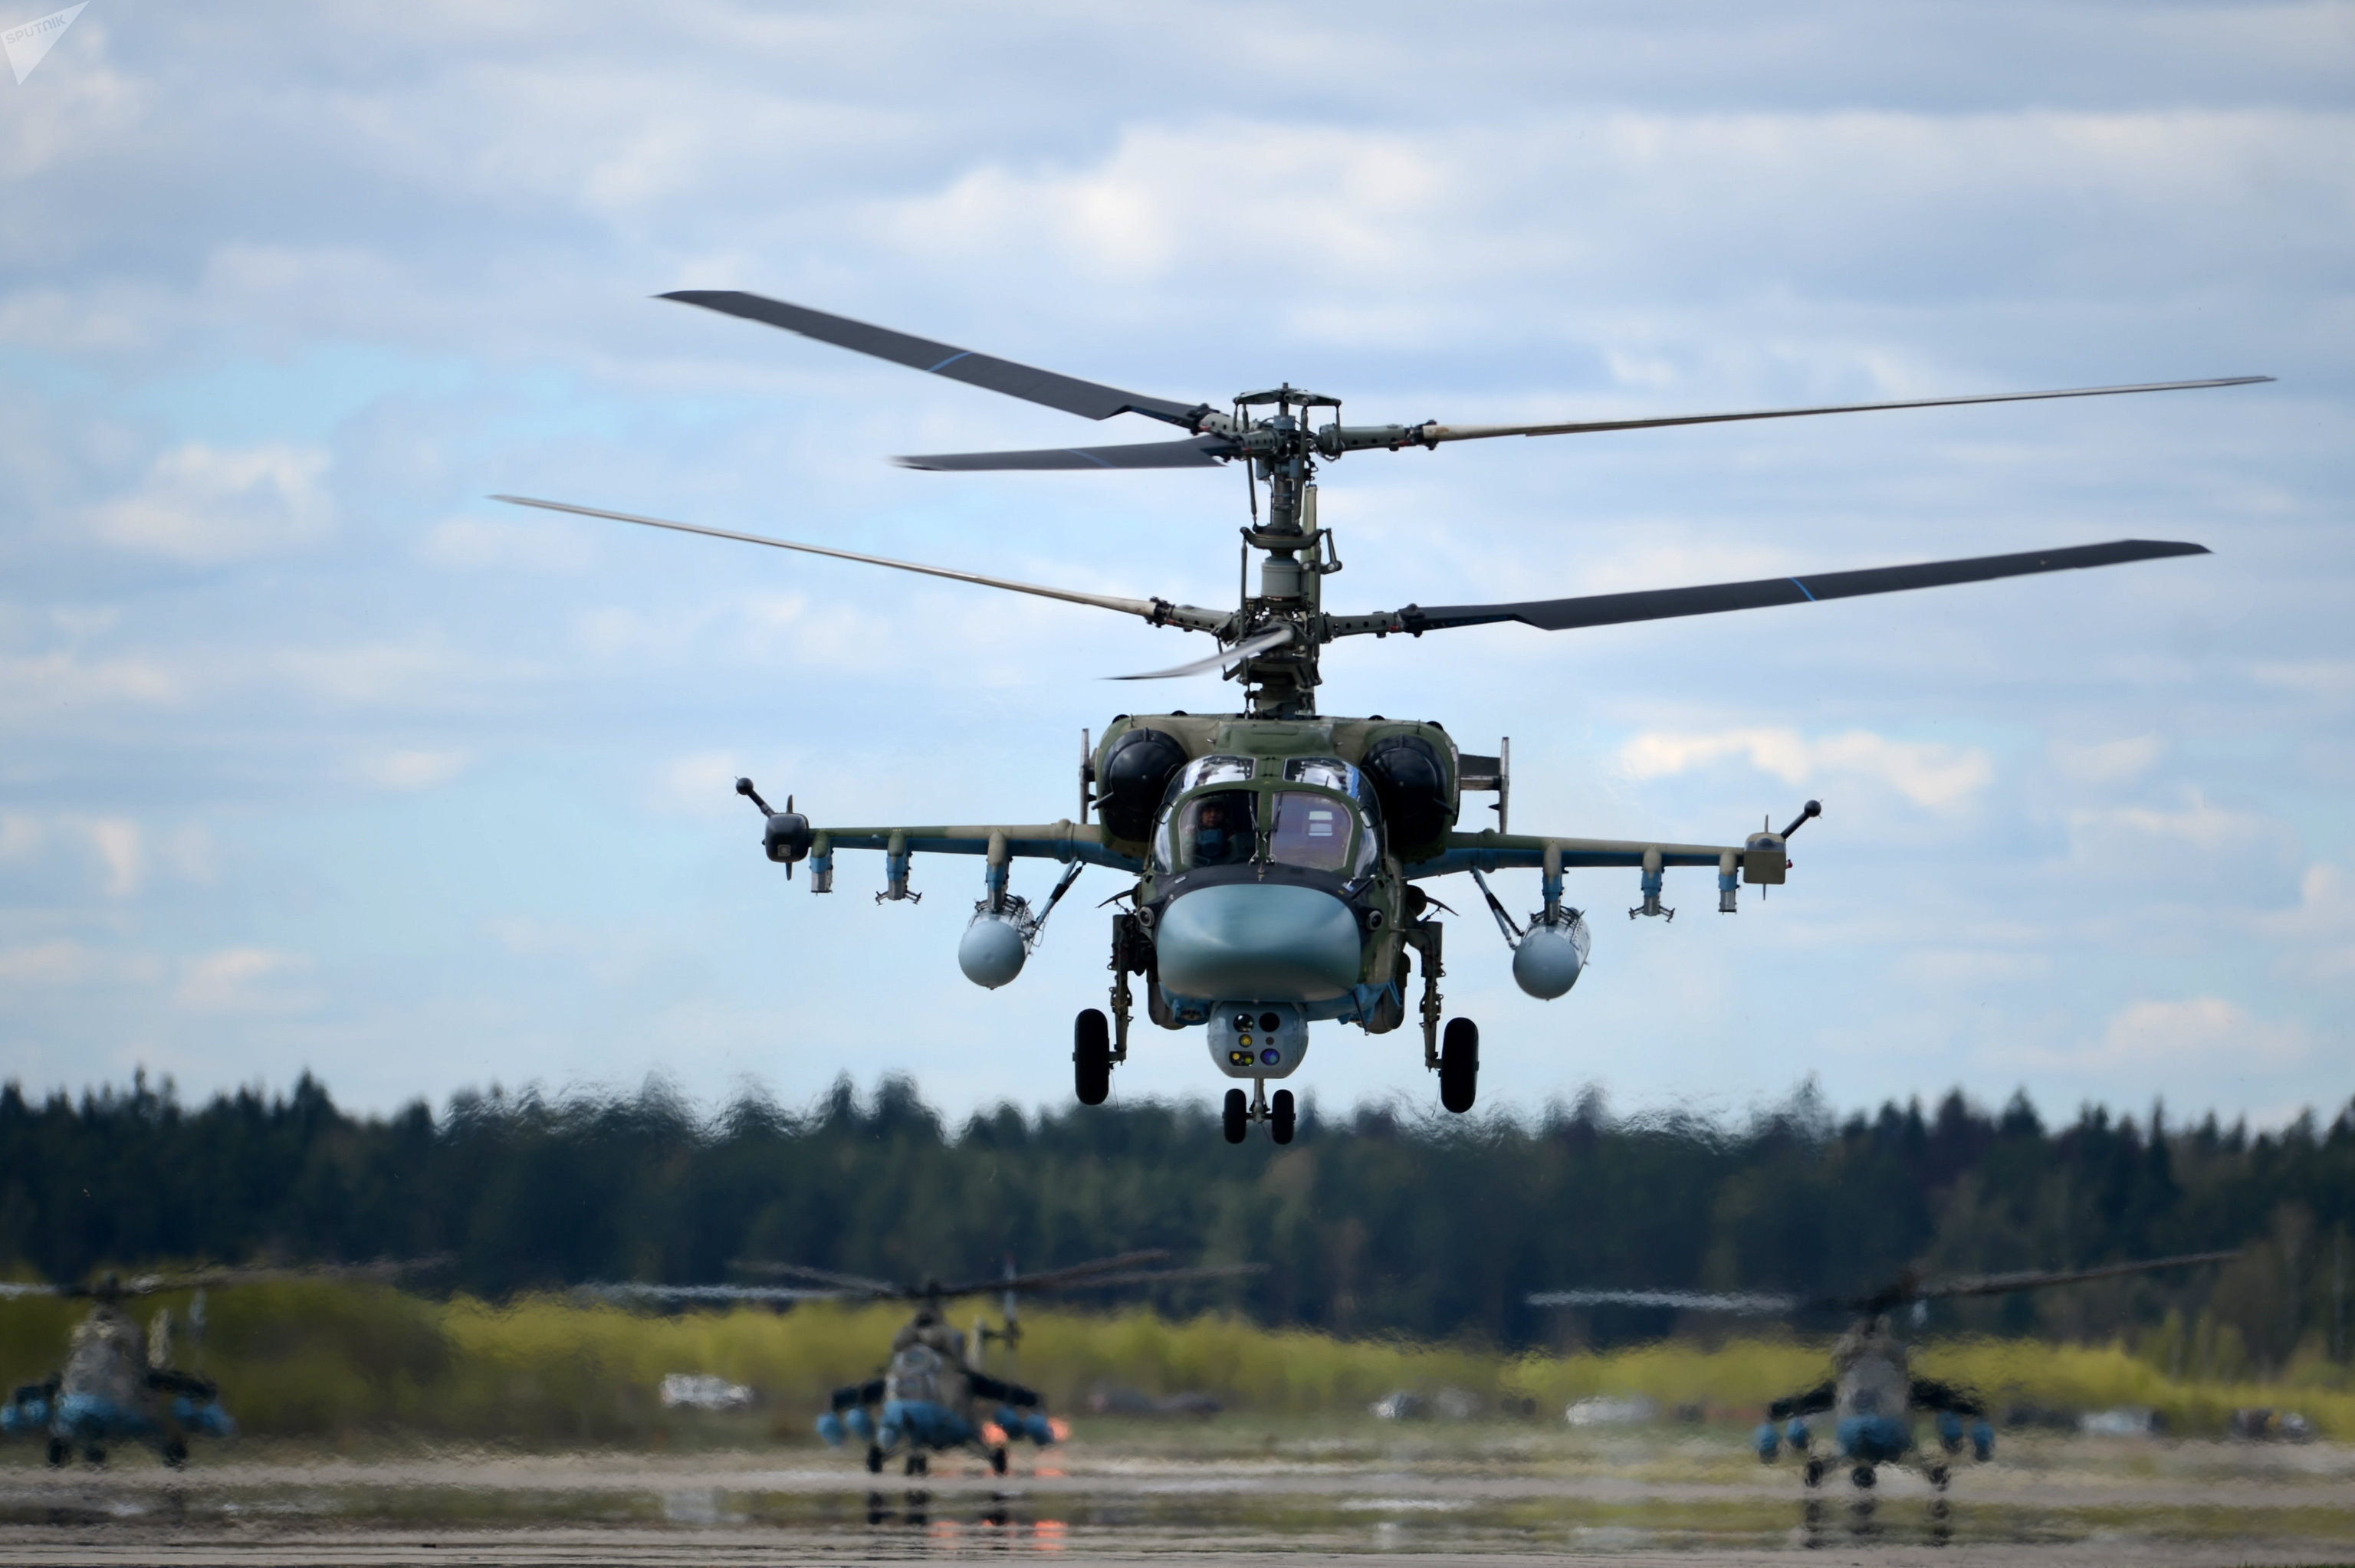 A Ka-52 Alligator attack helicopter during a rehearsal of the airshow for the Victory Day parade.